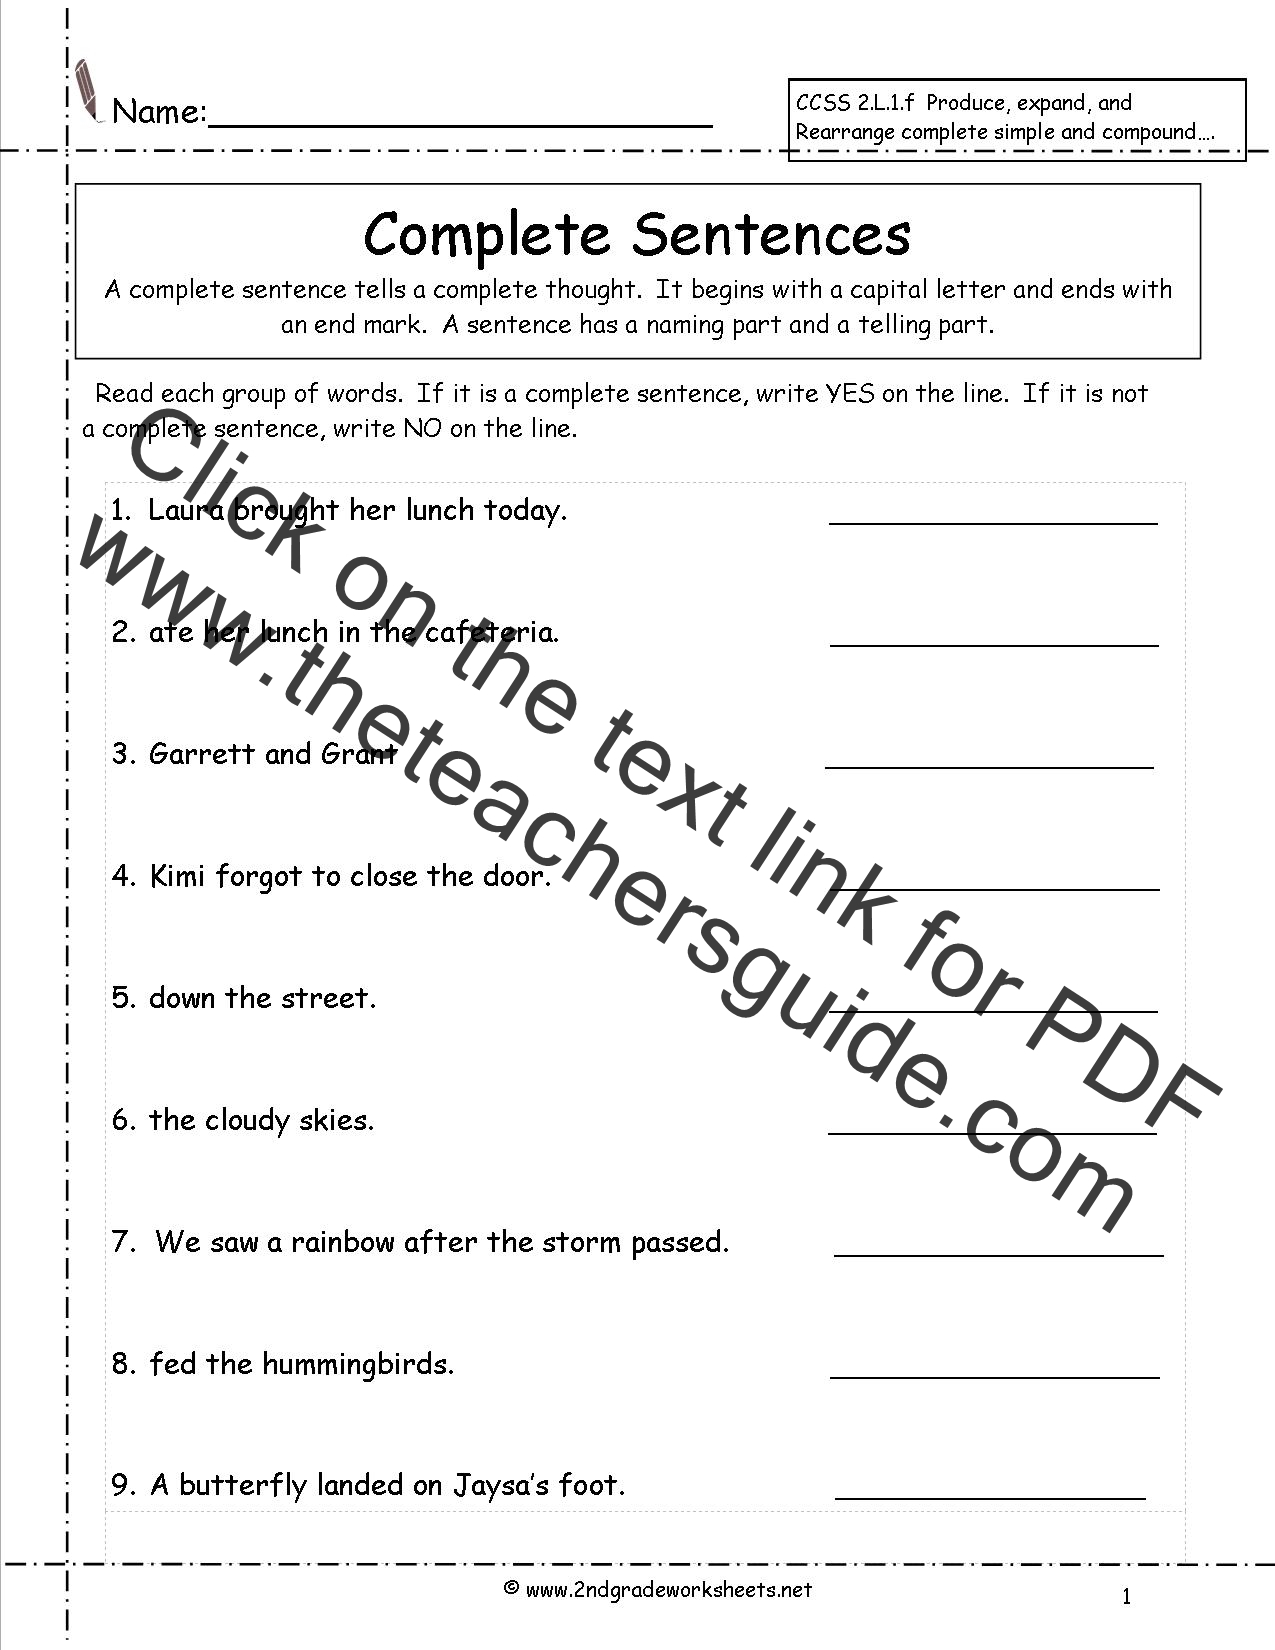 Worksheets Correct Sentences Worksheet second grade sentences worksheets ccss 2 l 1 f complete worksheets